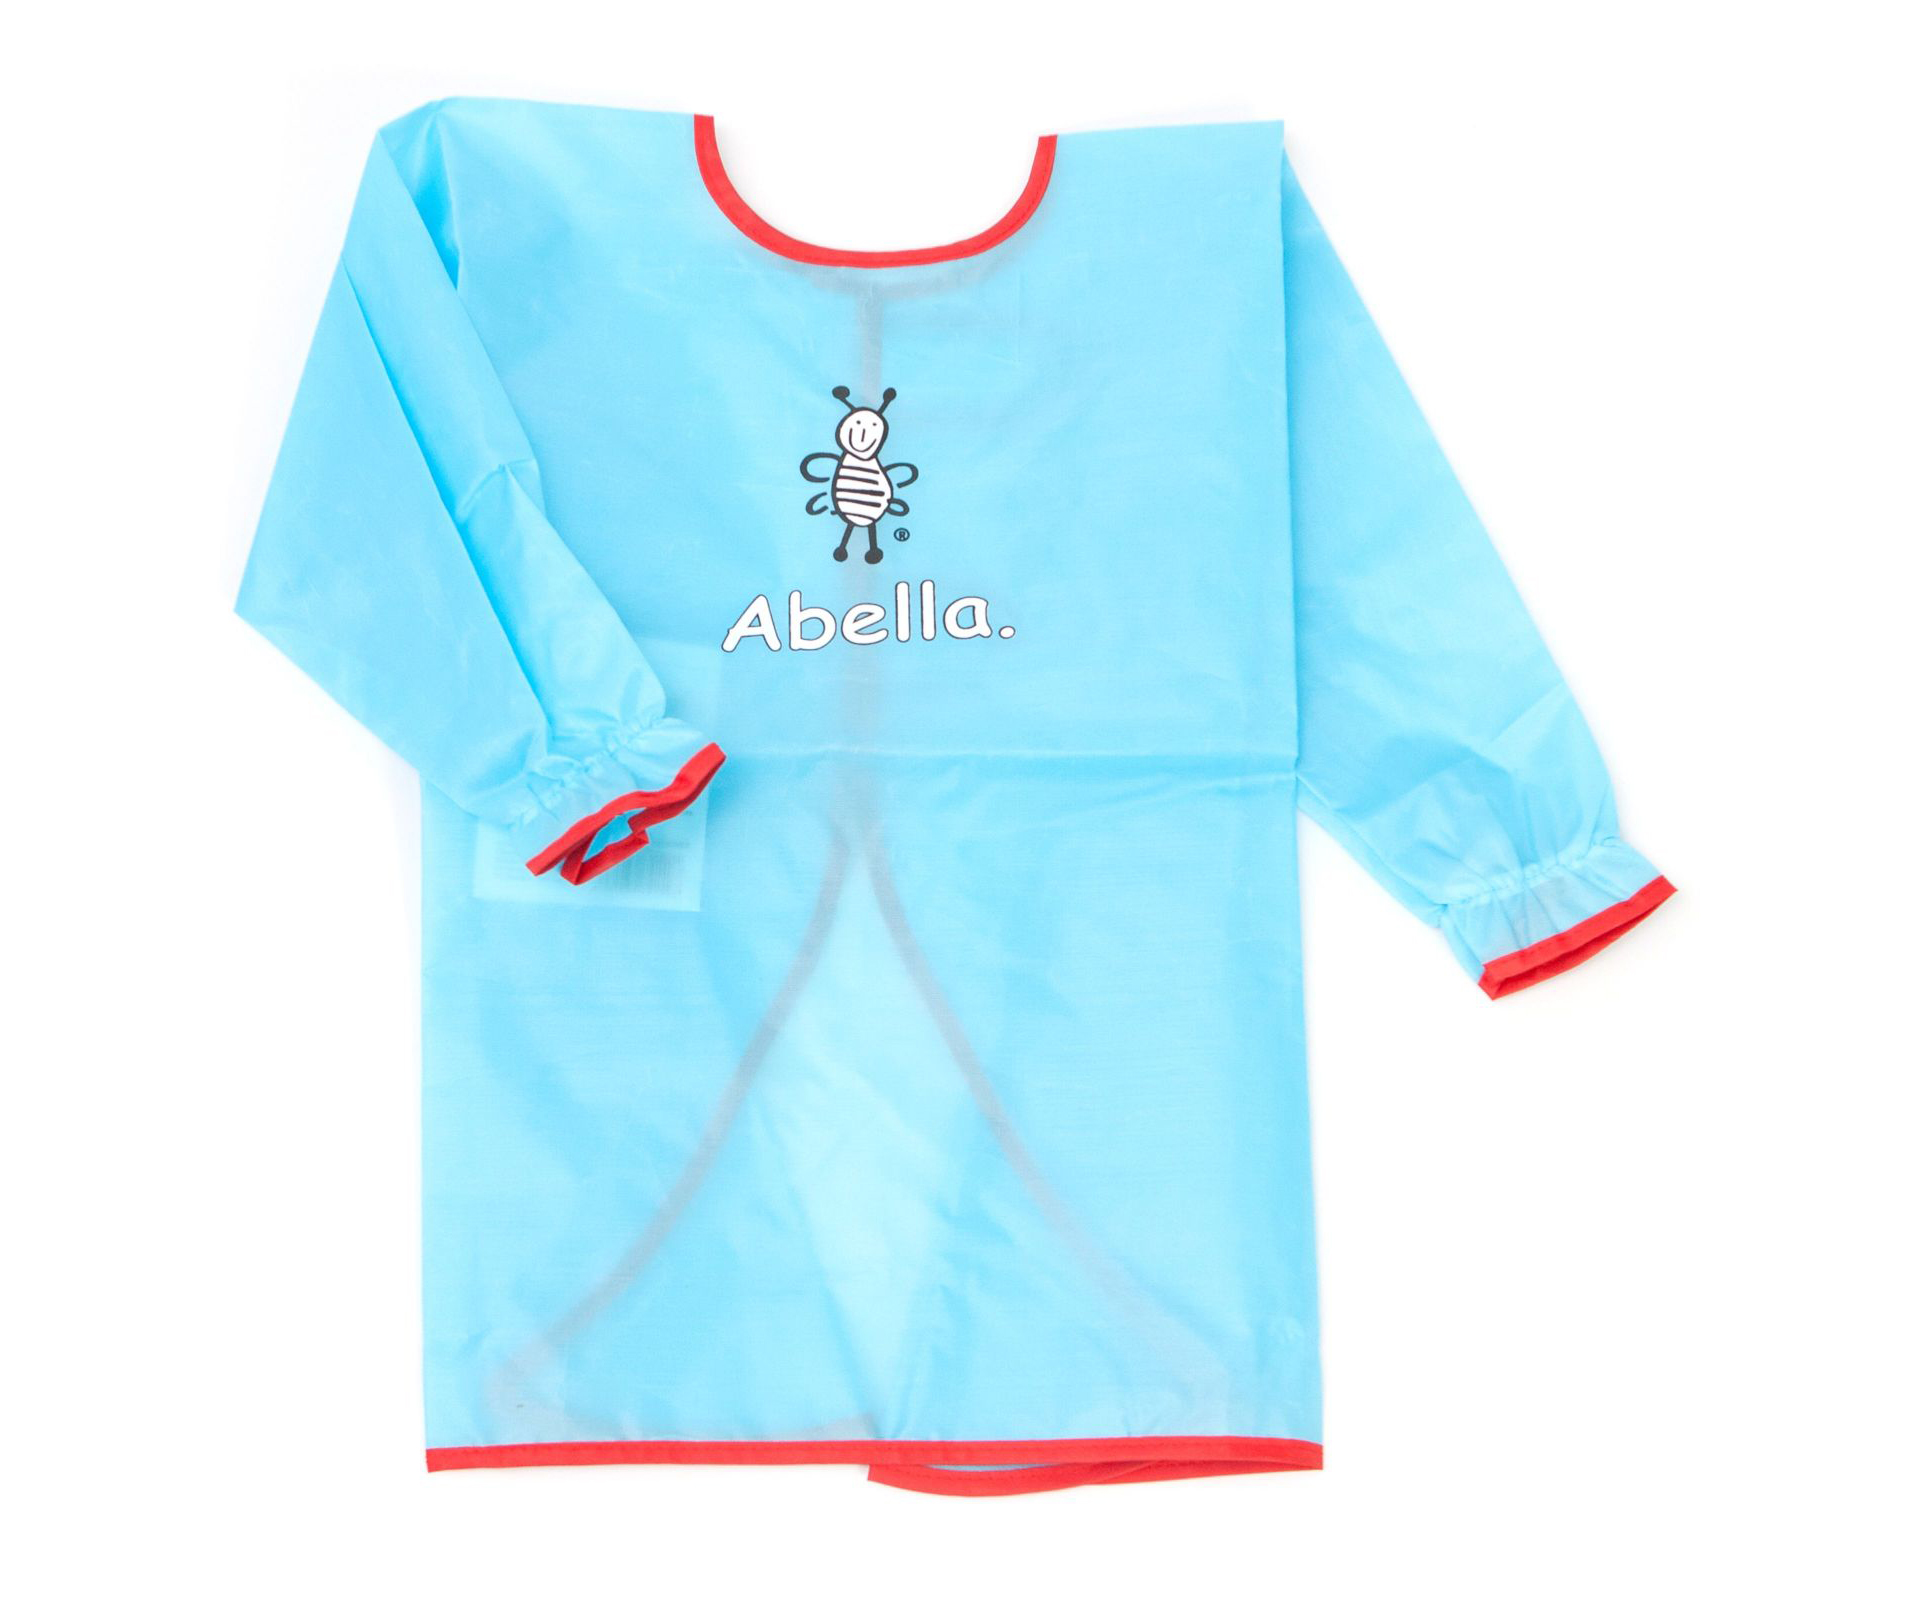 BABYNOPRINGUE IMPERMEABLE TEN ABELLA